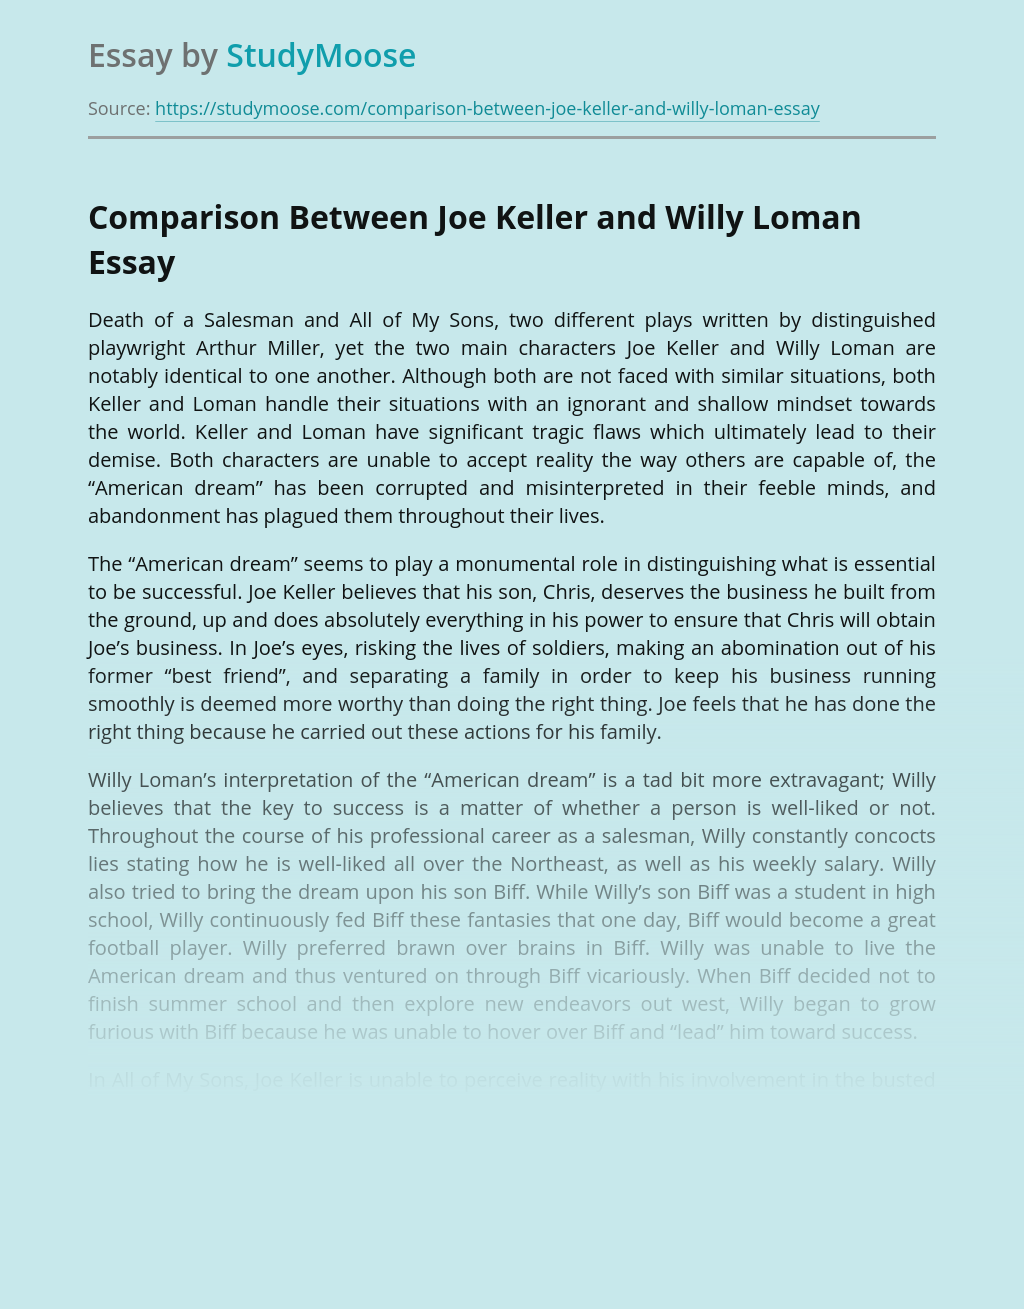 Comparison of Joe Keller's and Willy Loman's Plays